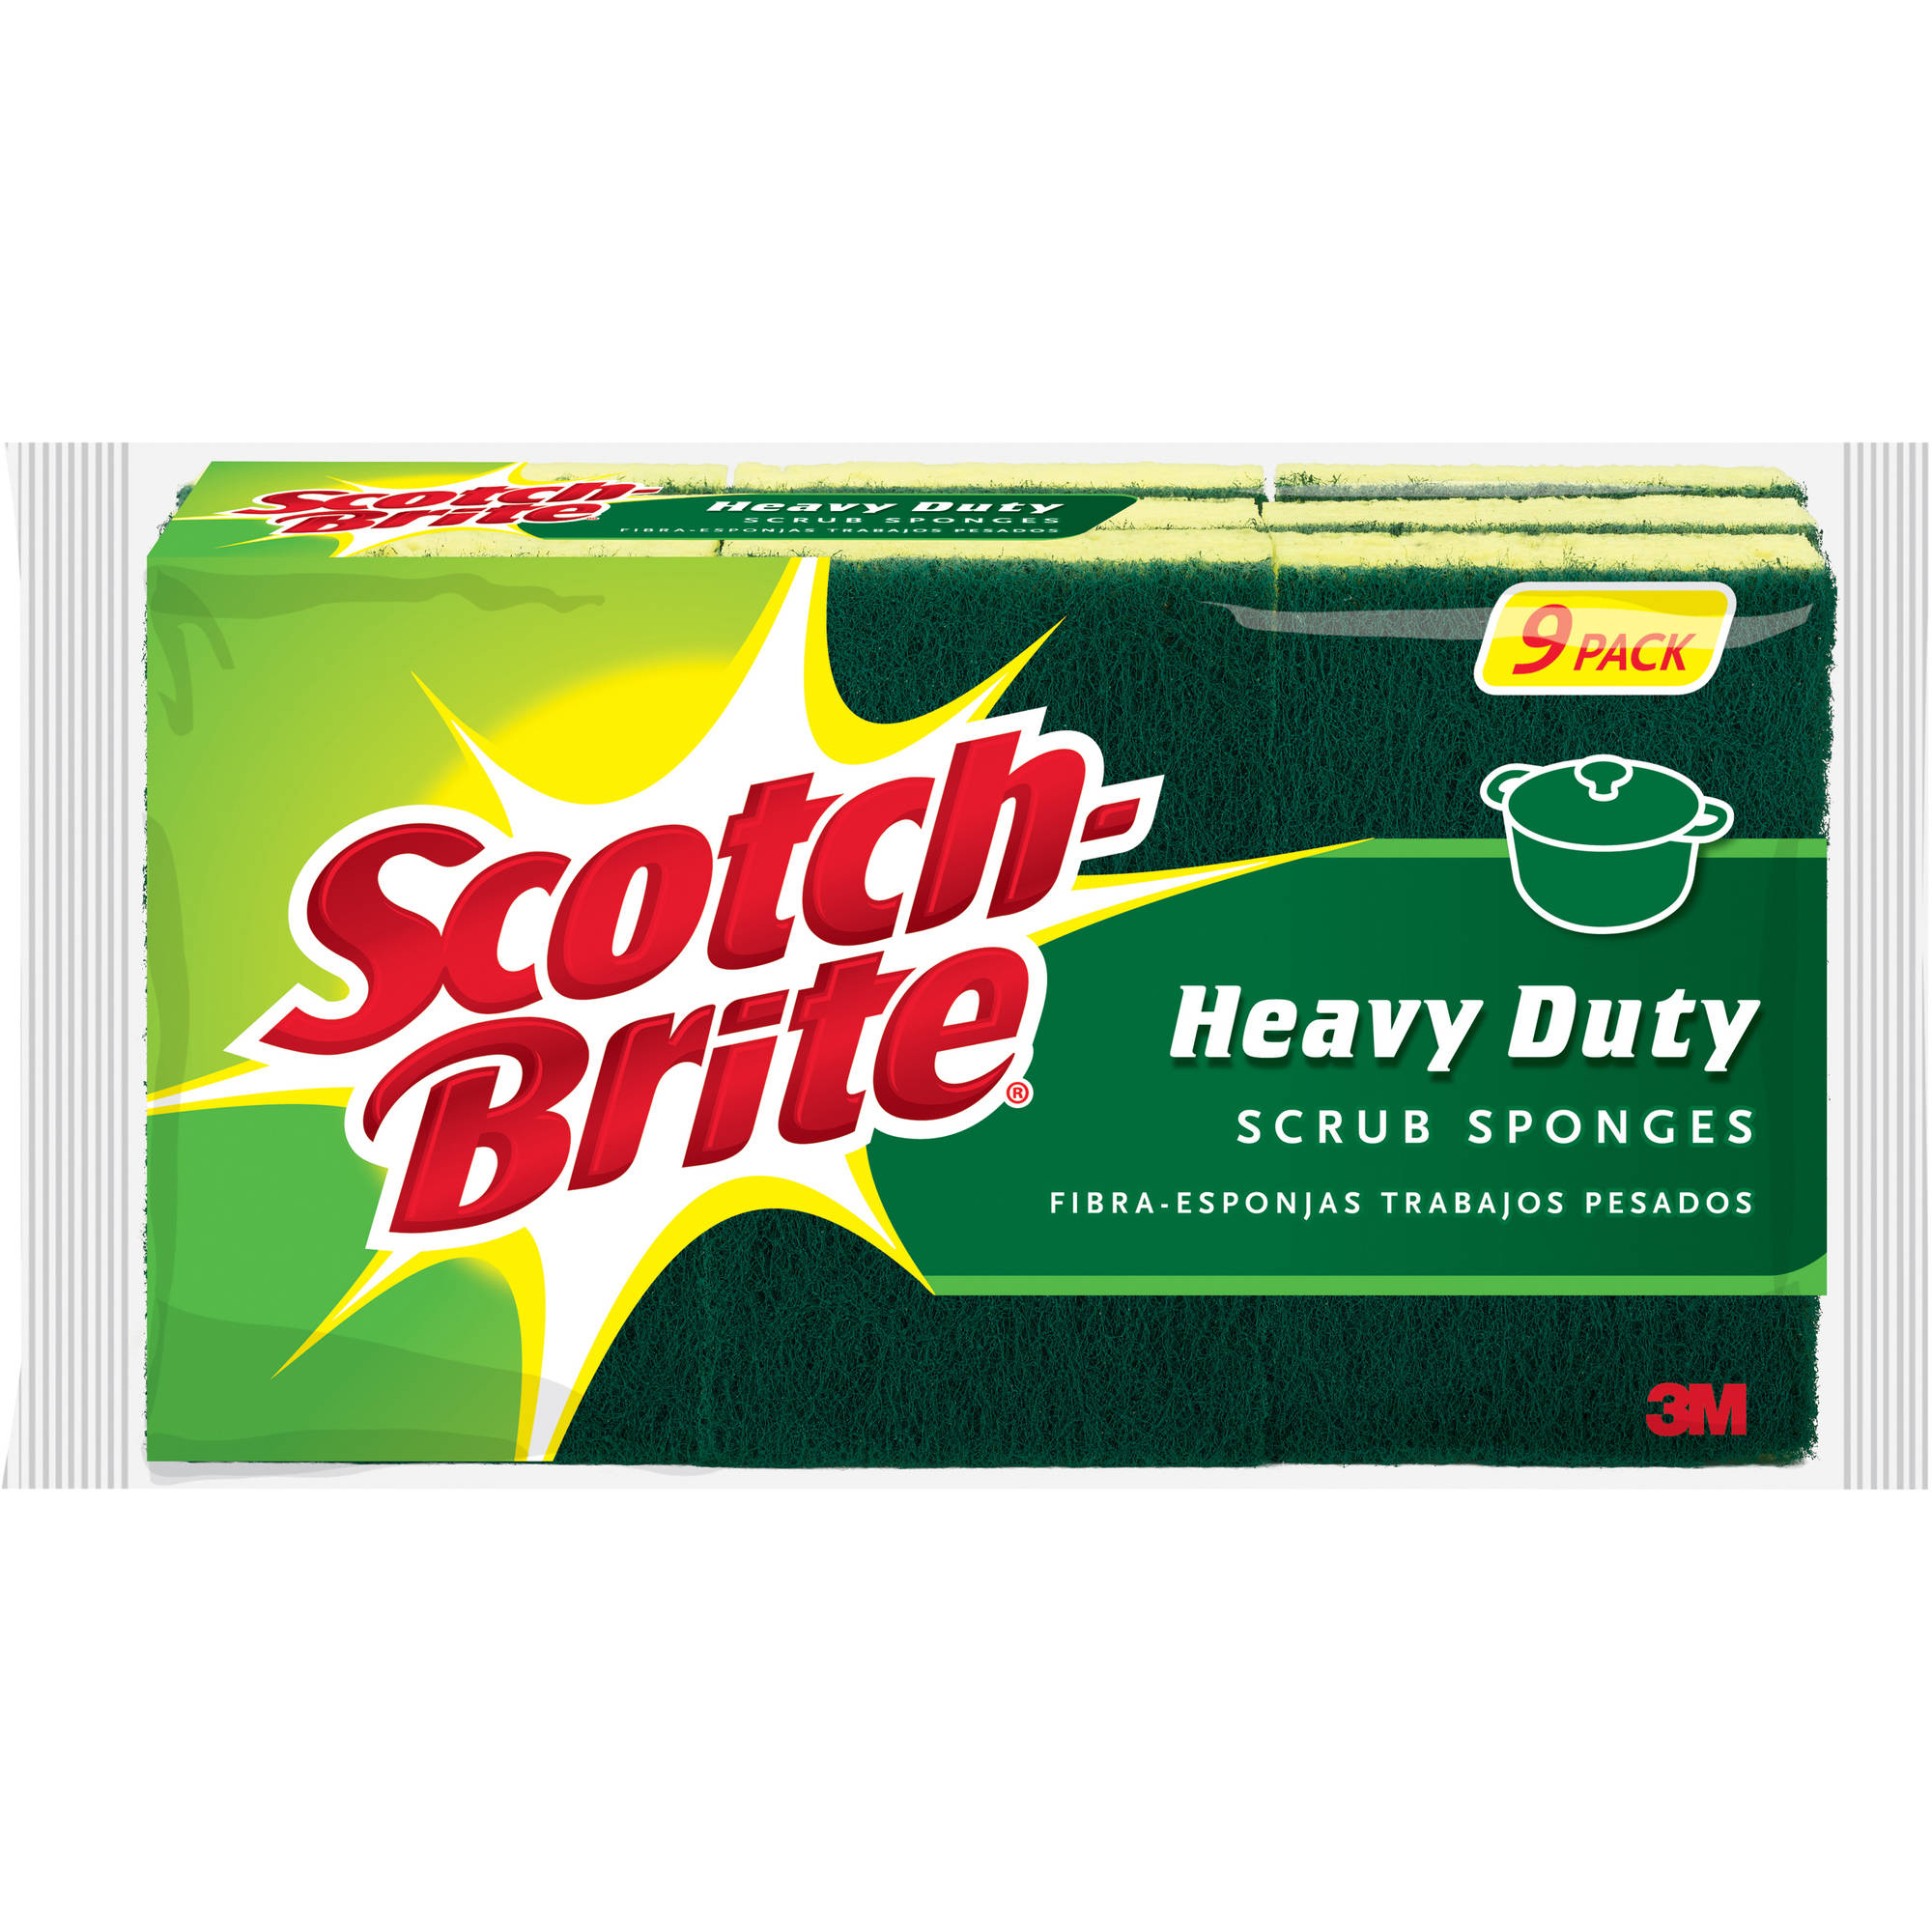 Scotch-Brite Heavy Duty Scrub Sponges, 9 pack